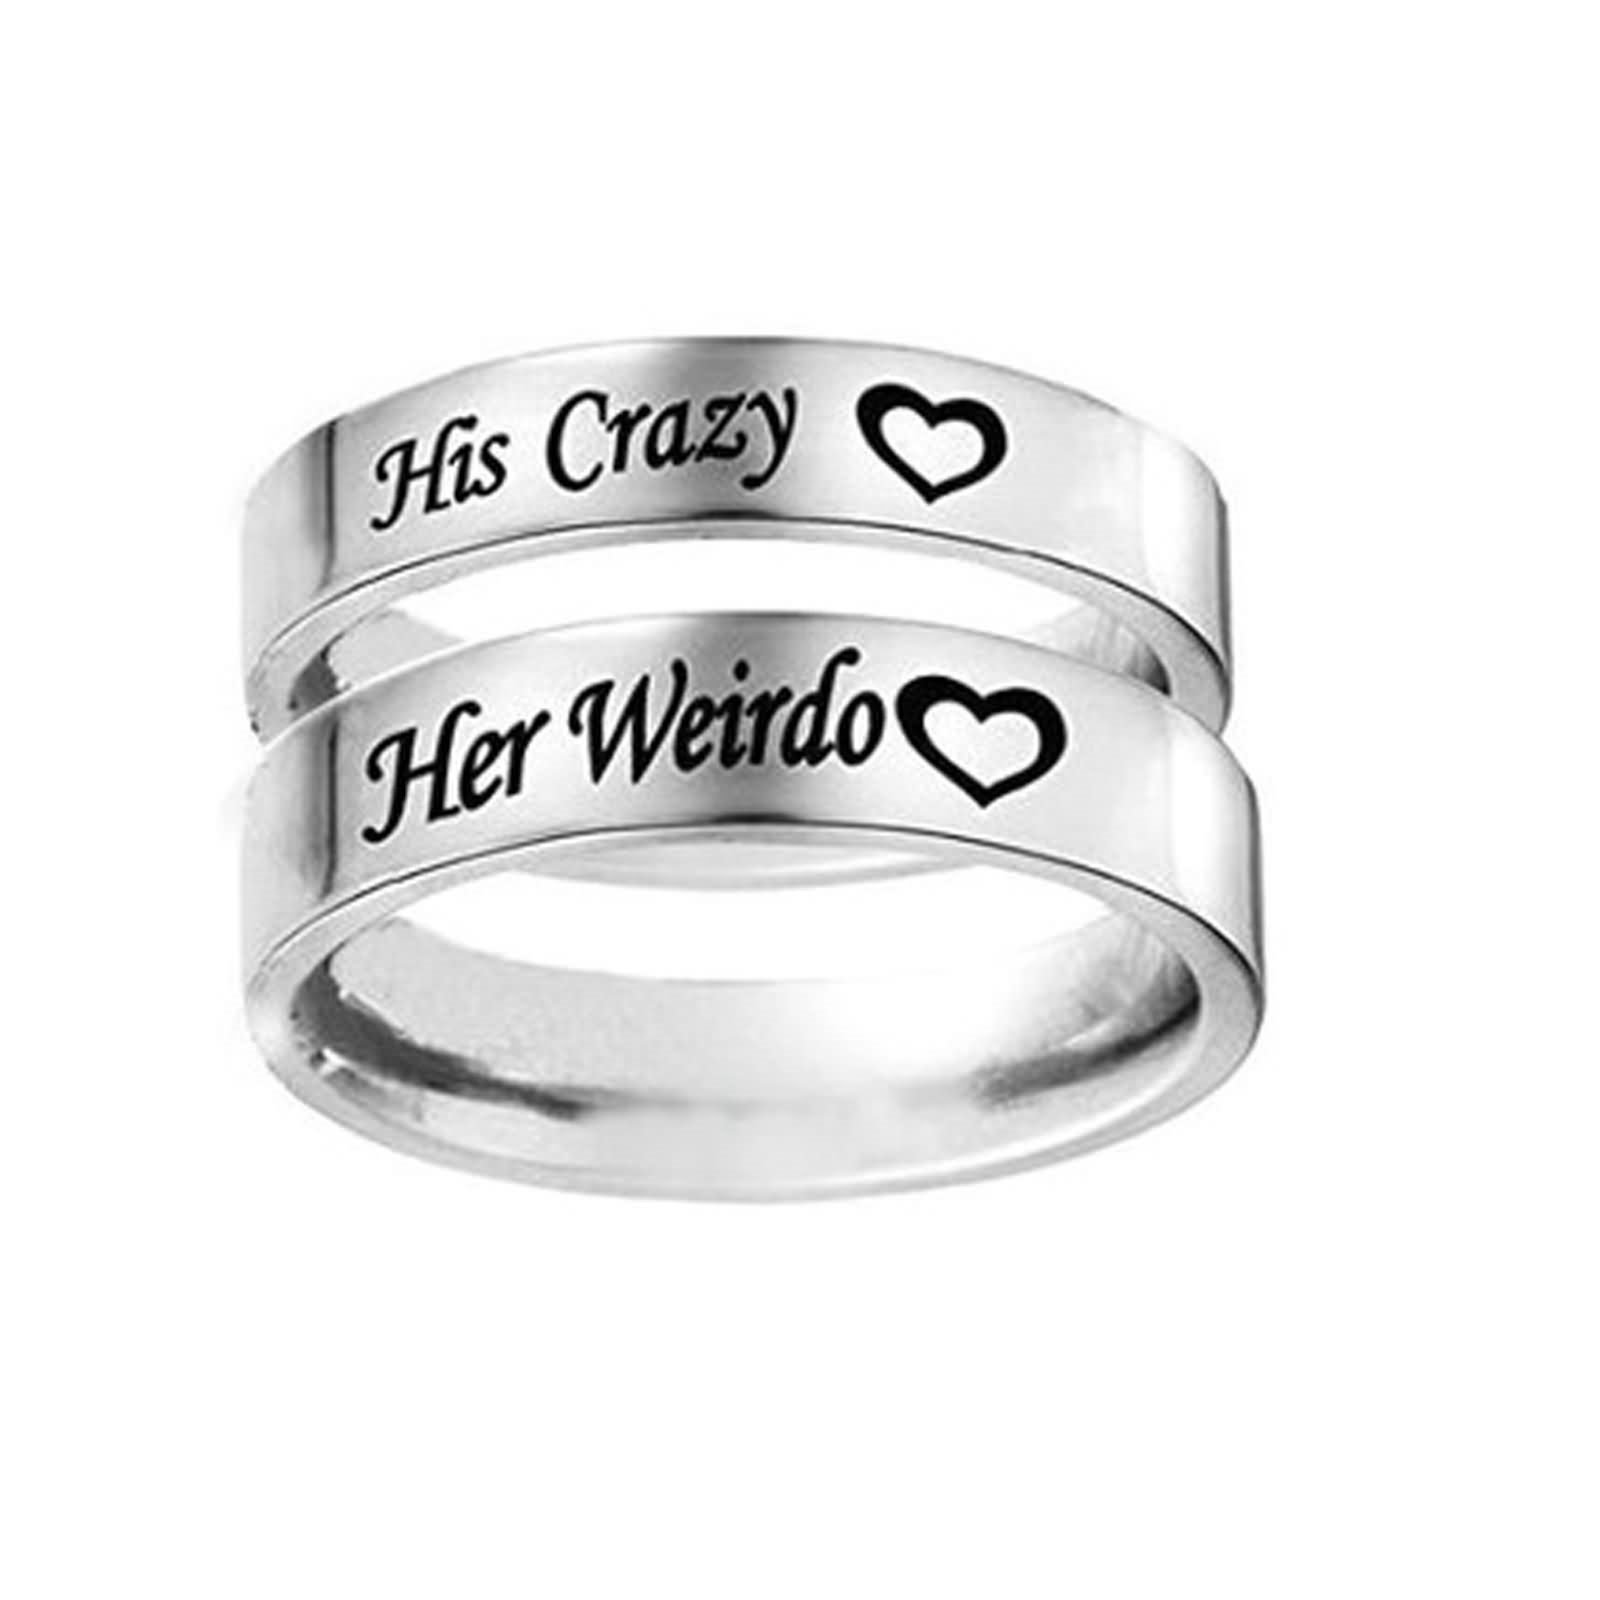 Daesar 1PCS Couple Ring Bands Stainless Steel Ring Engraved His Crazy Heart Silver Wedding Rings Ring Size 11 by Daesar (Image #1)